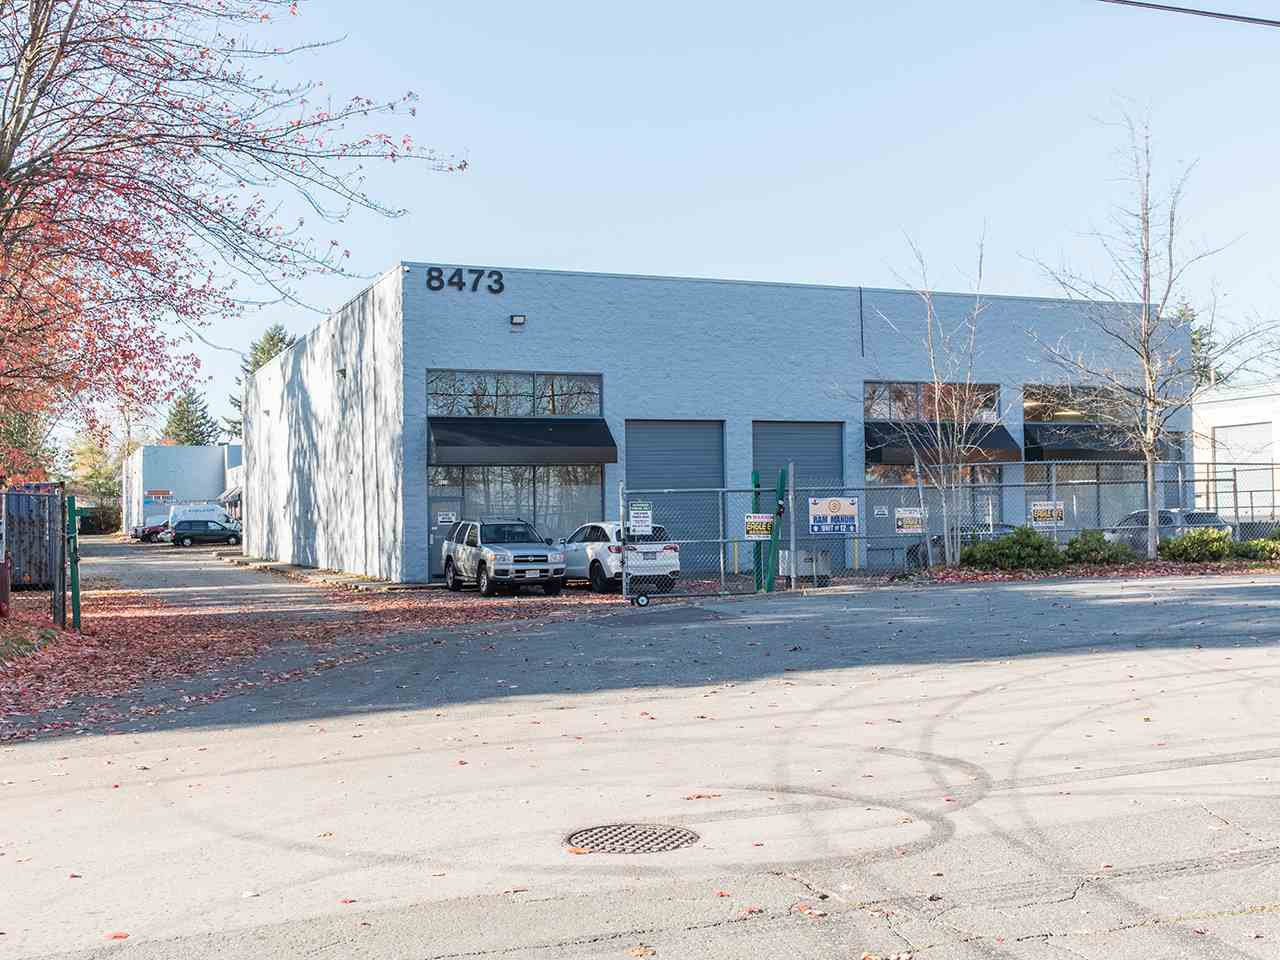 Main Photo: 12 8473 124 Street in Surrey: Queen Mary Park Surrey Industrial for sale : MLS®# C8035157